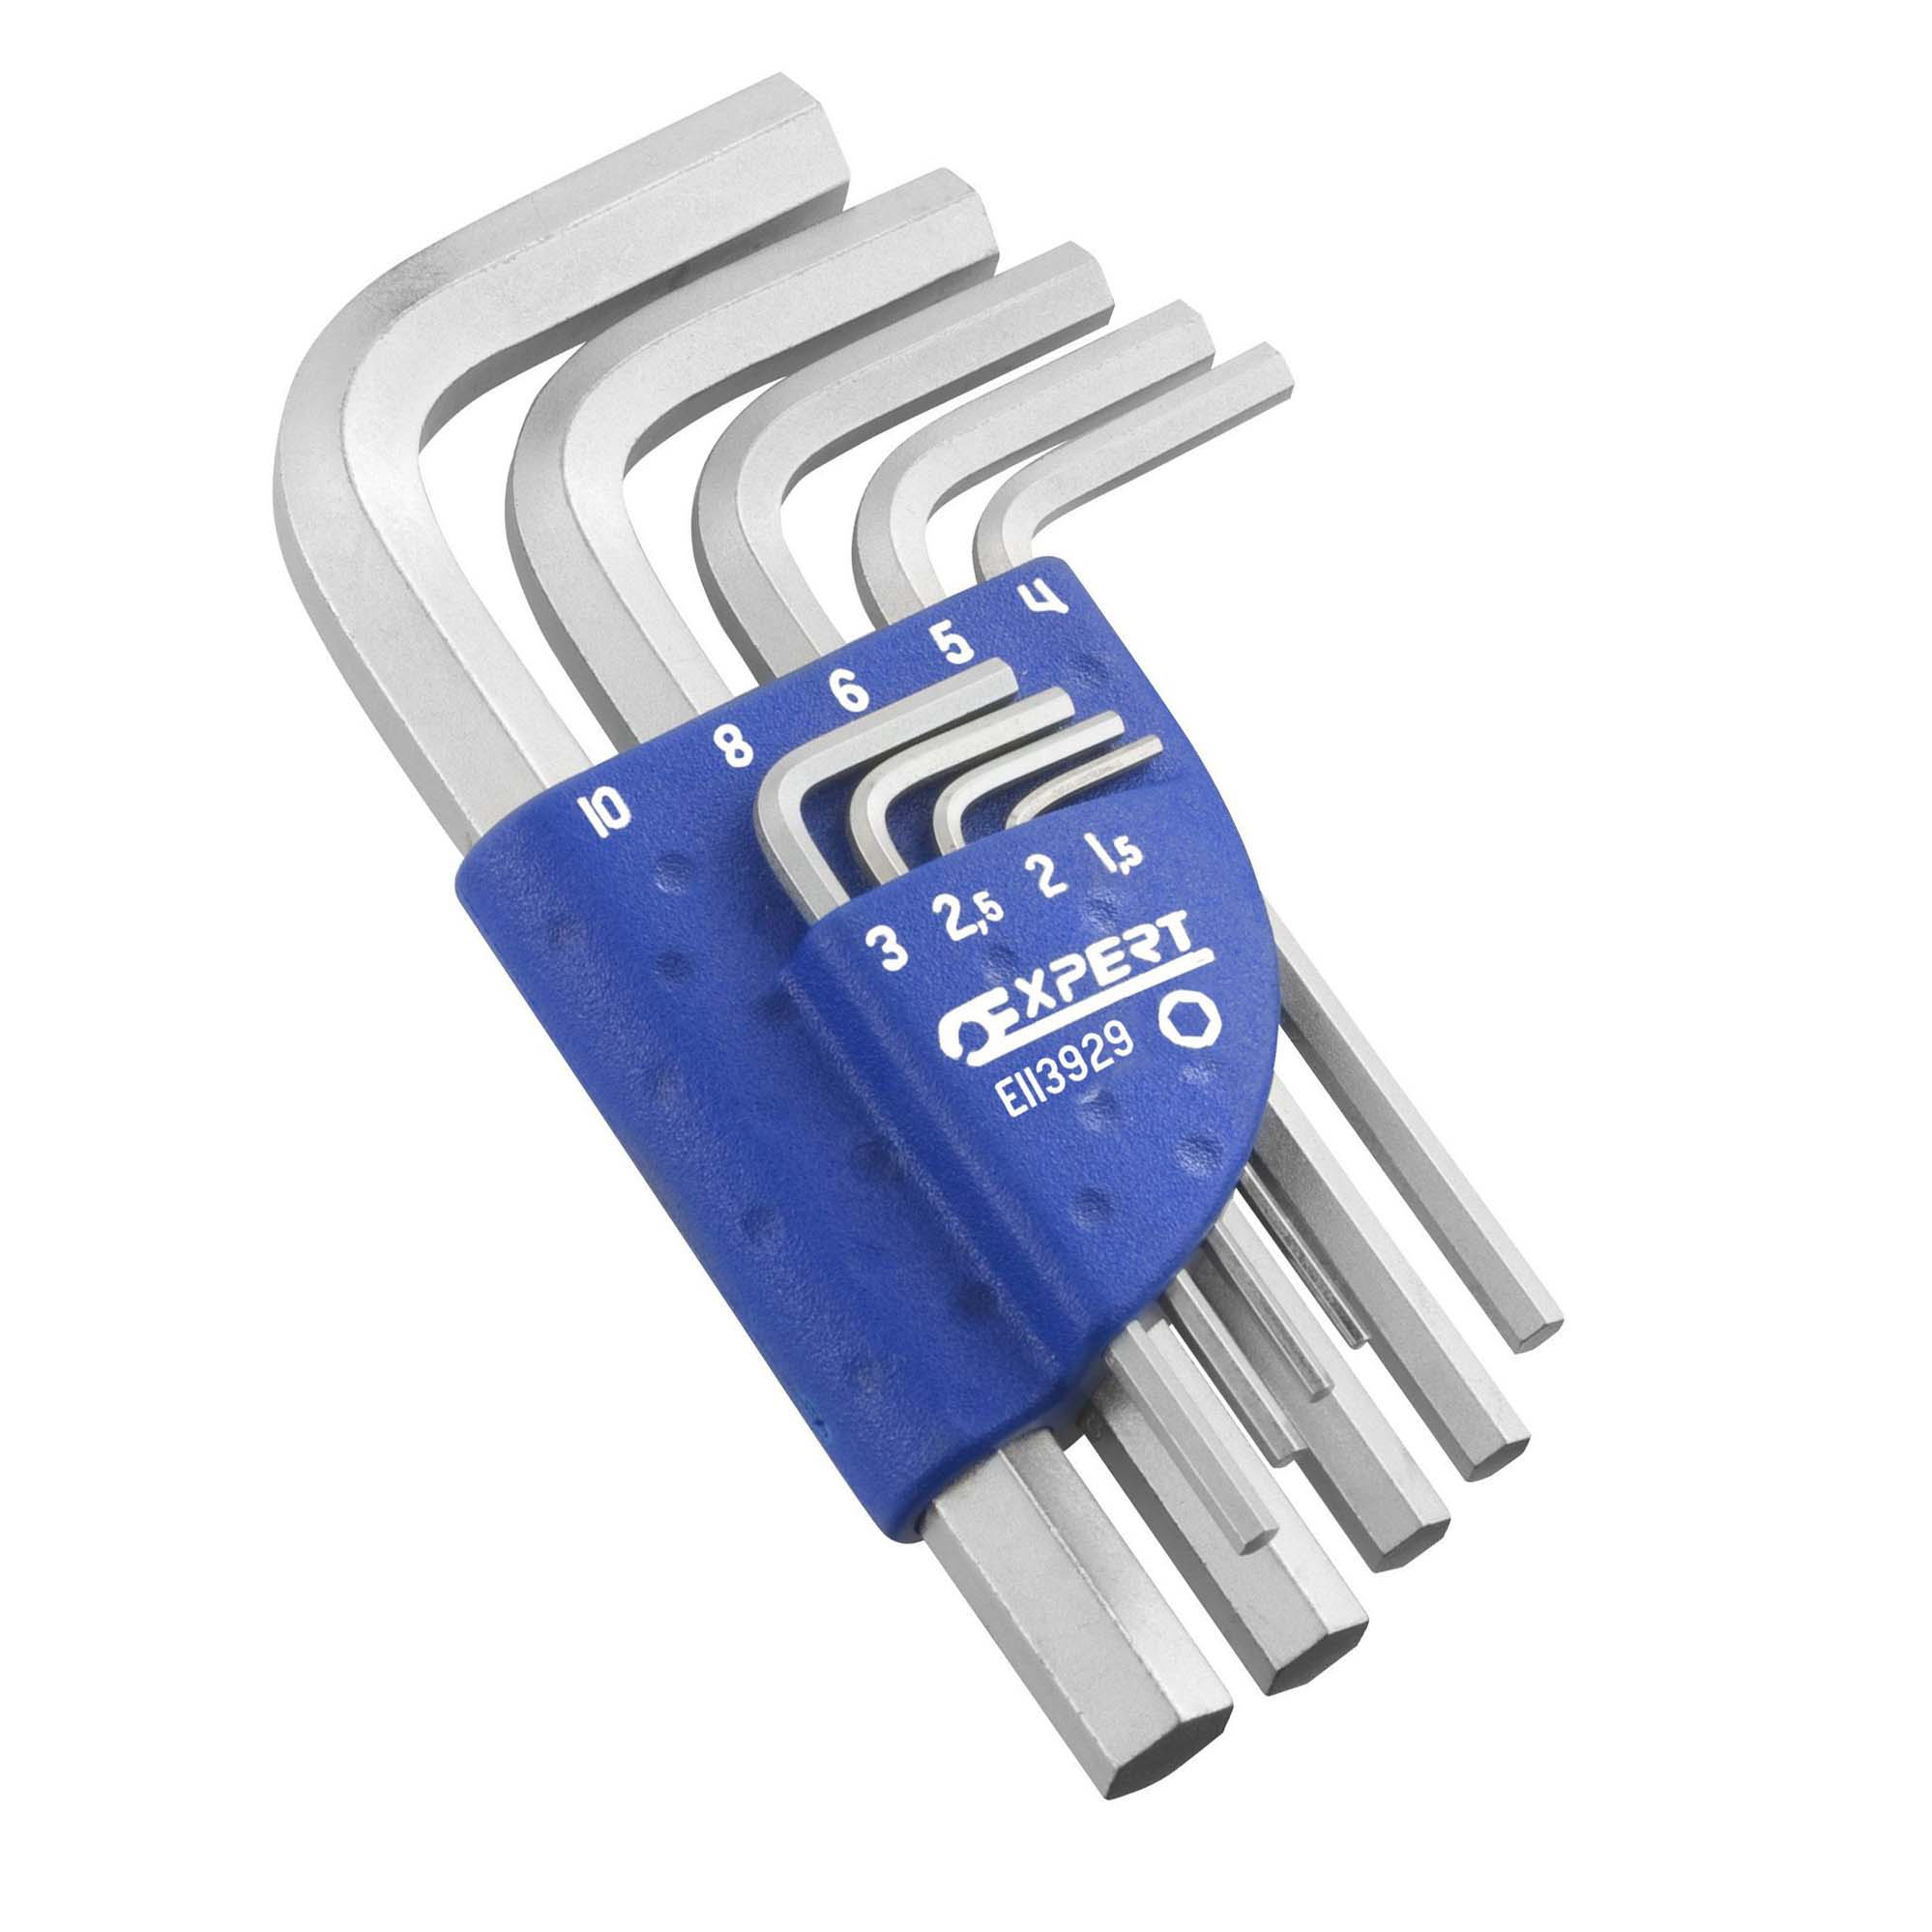 Short Hex Key Metric Set 1.5-10mm - 9pc